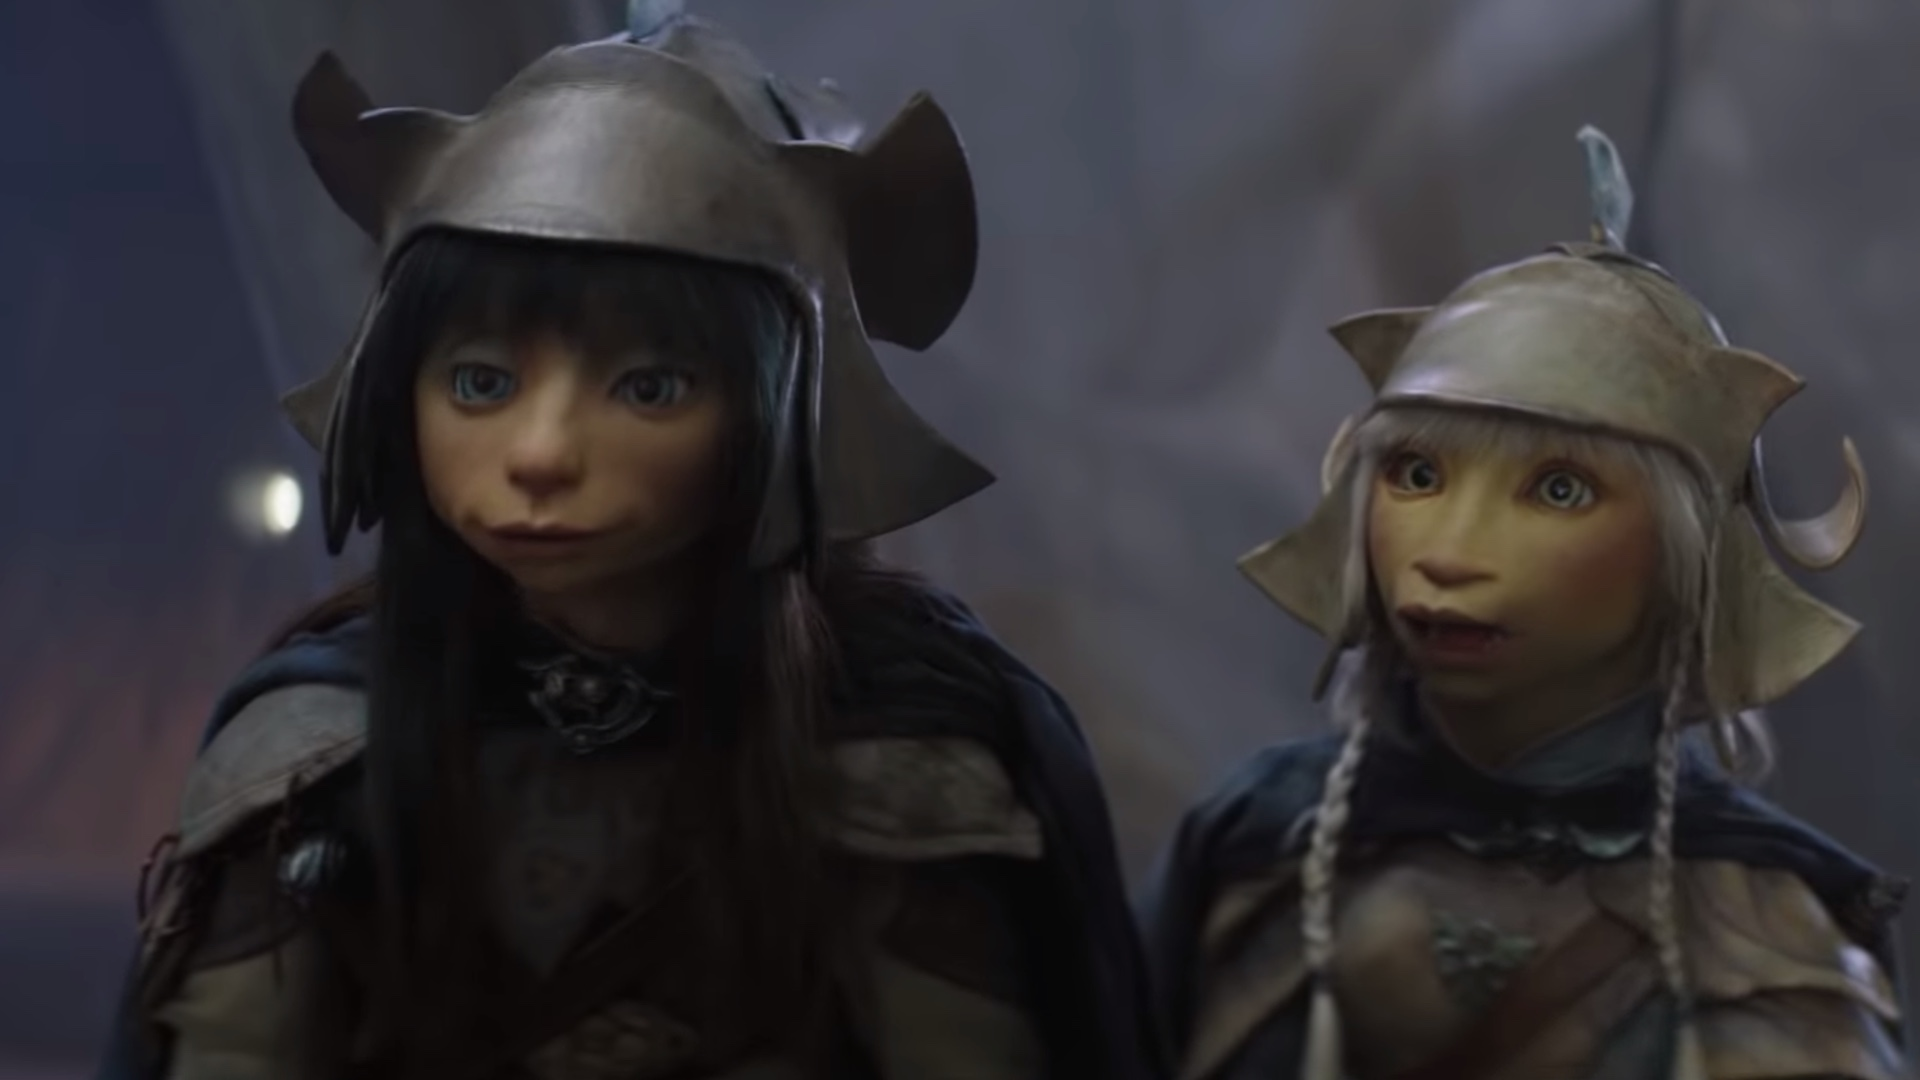 Wonderful Featurette For THE DARK CRYSTAL: AGE OF RESISTANCE Focuses on Expanding Jim Henson's Fantasy World